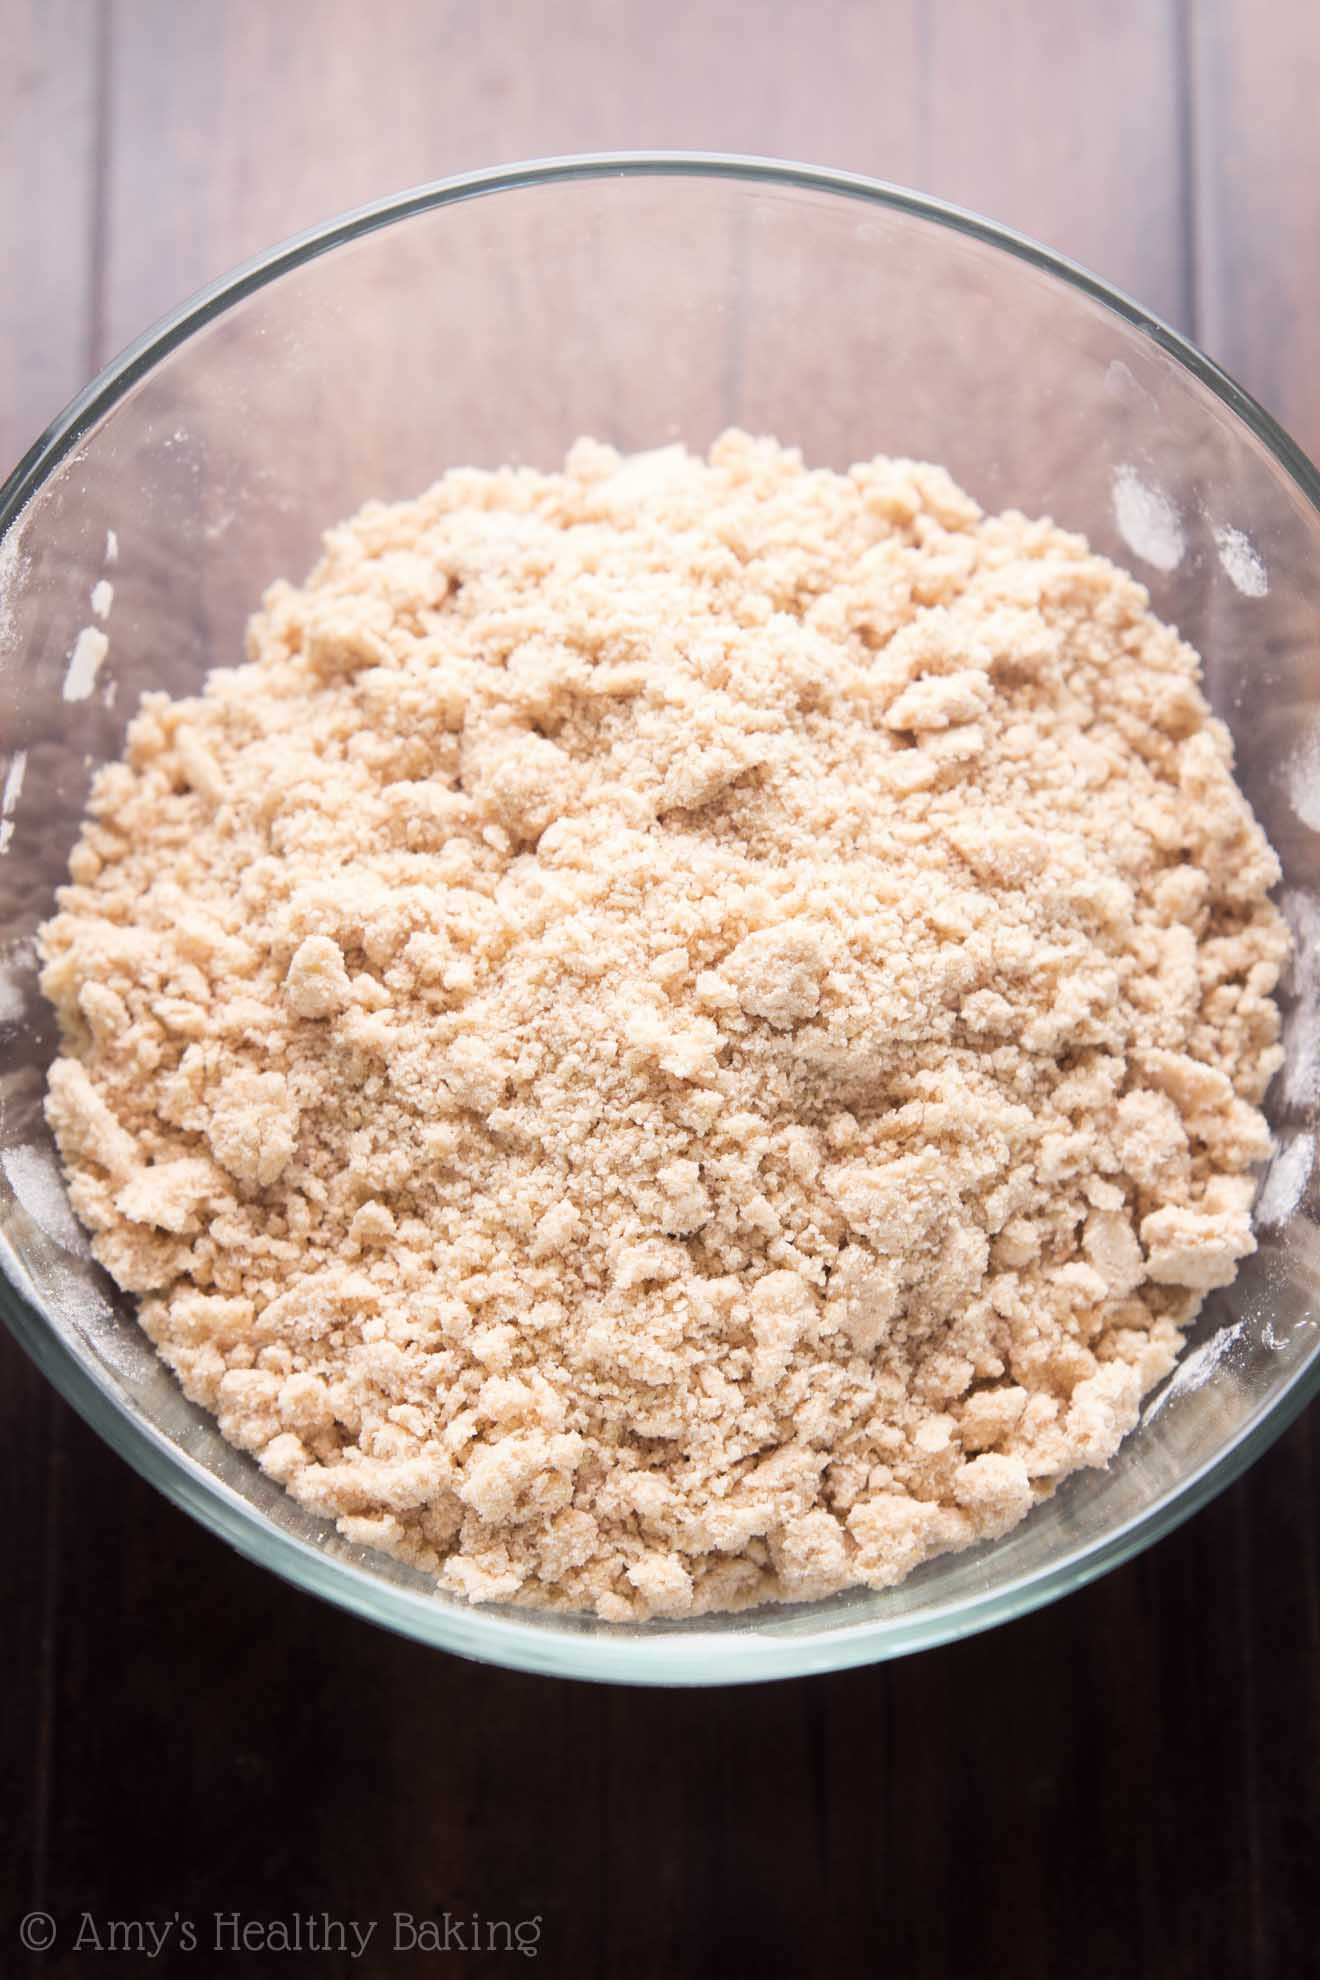 The BEST flaky whole wheat pie crust! My family swears by this recipe!